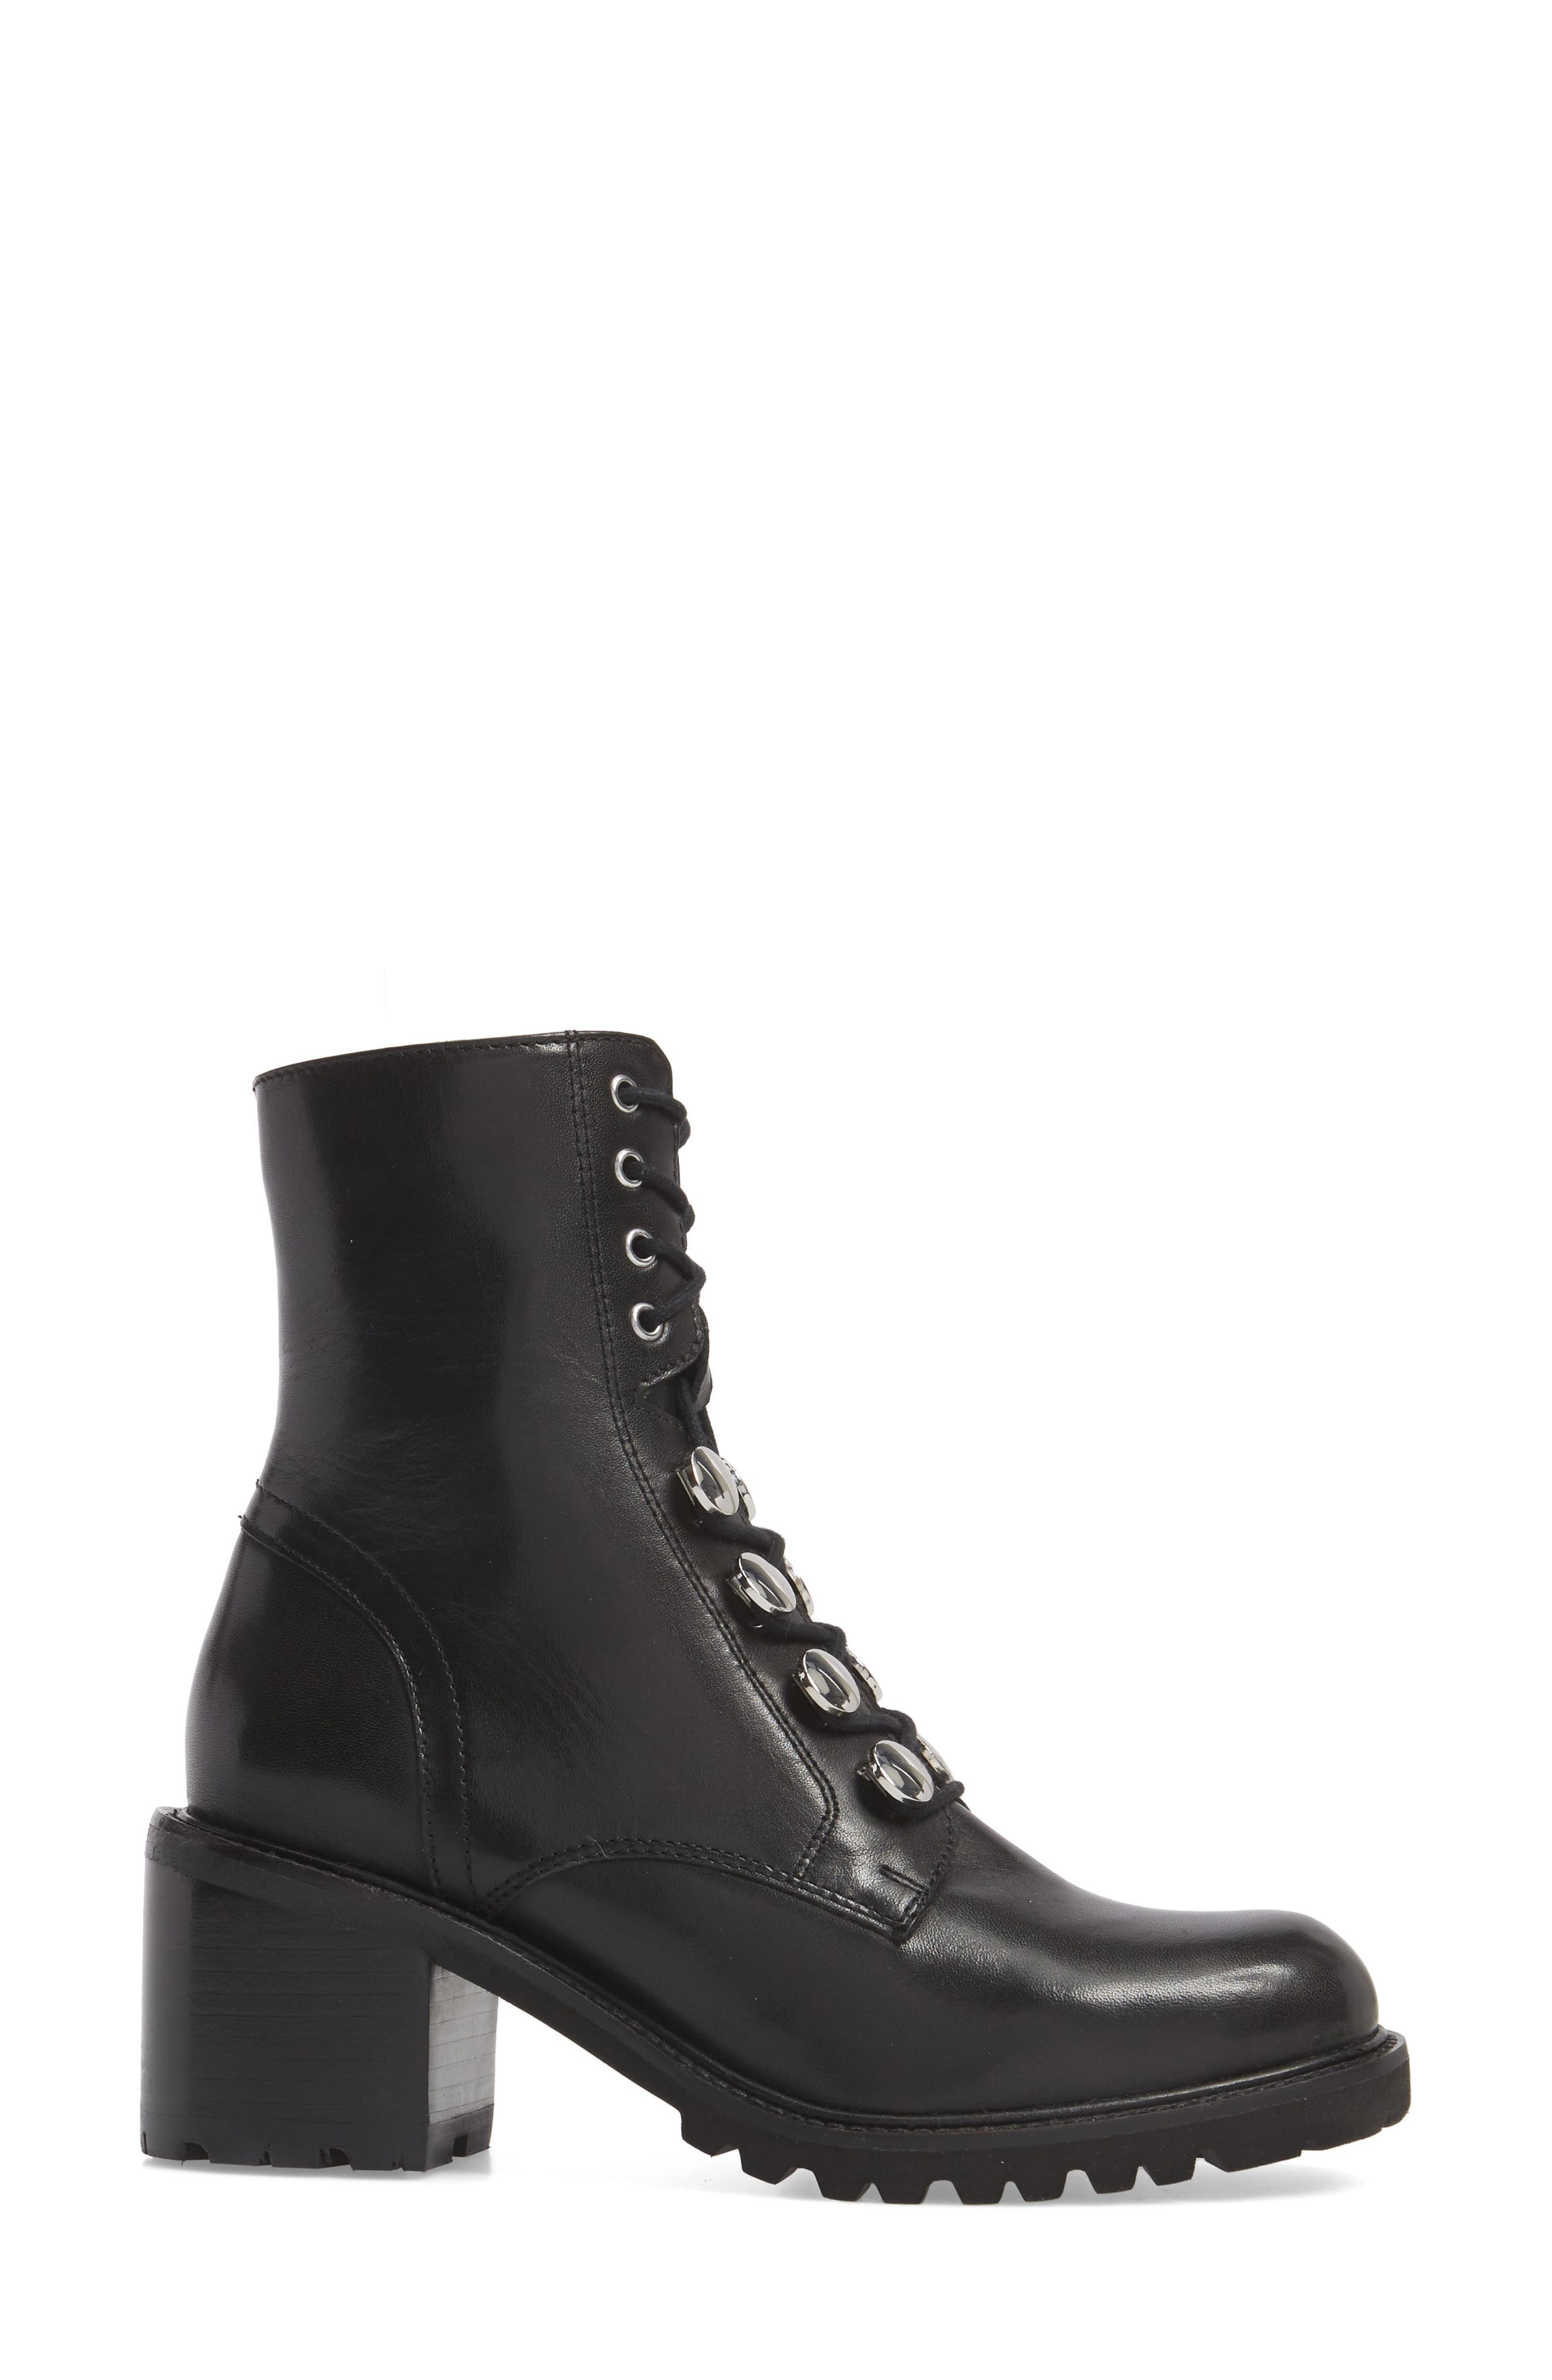 Make it Count Lace-Up Boot,                             Alternate thumbnail 3, color,                             001